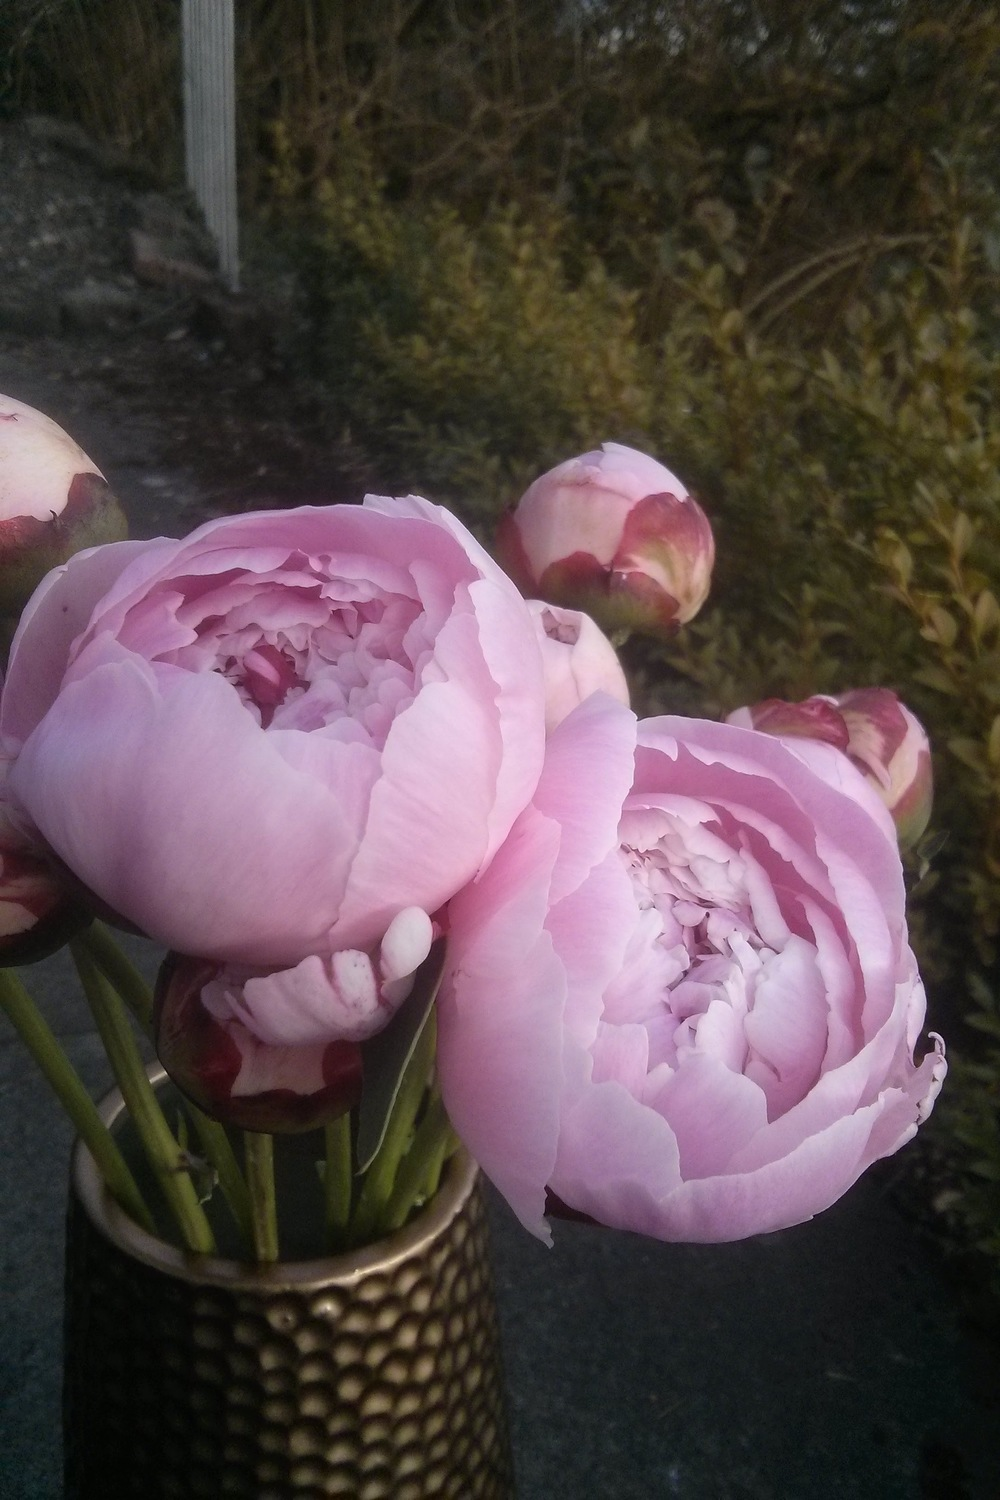 Coaxing peonies open in the sun